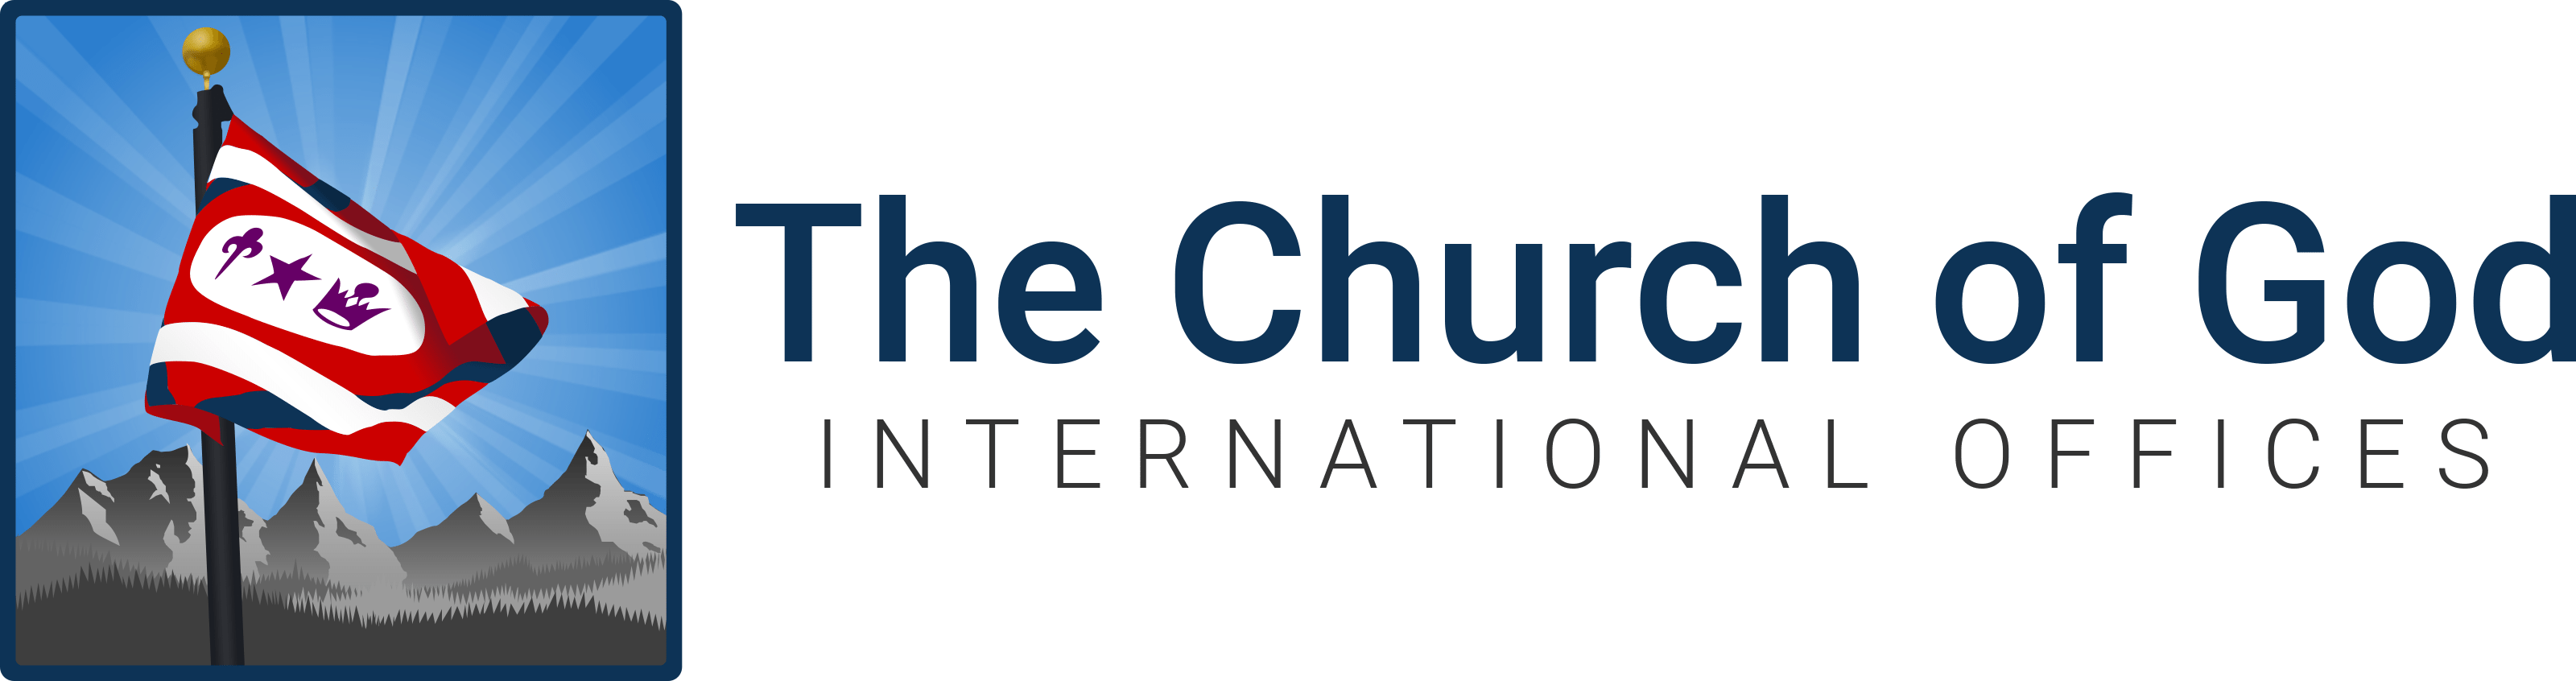 The Church of God, International Offices